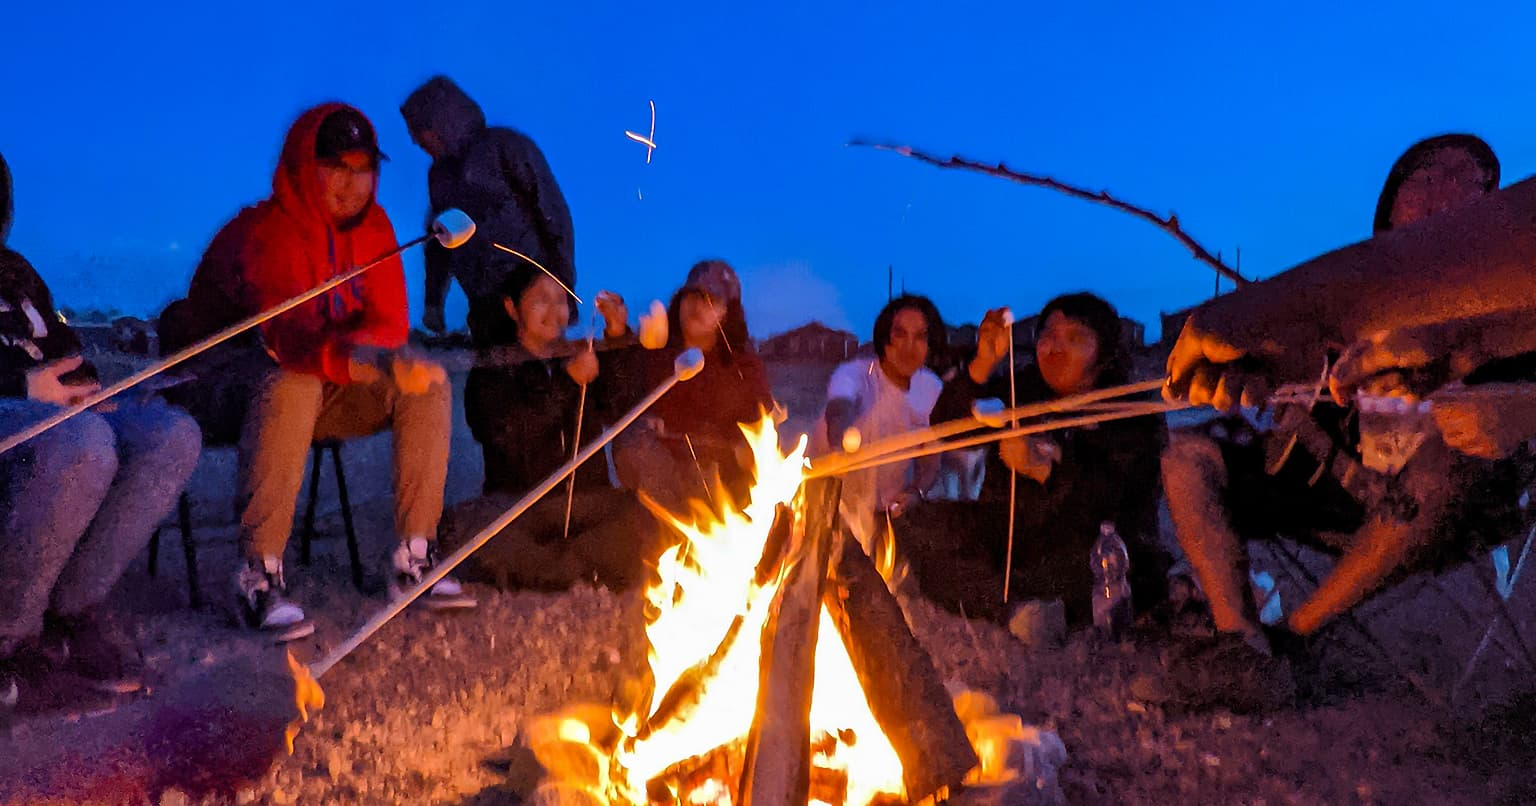 Students from the Cree community of Waswanipi roasting marshmallows around a campfire as part of one Youth Fusion's programs.